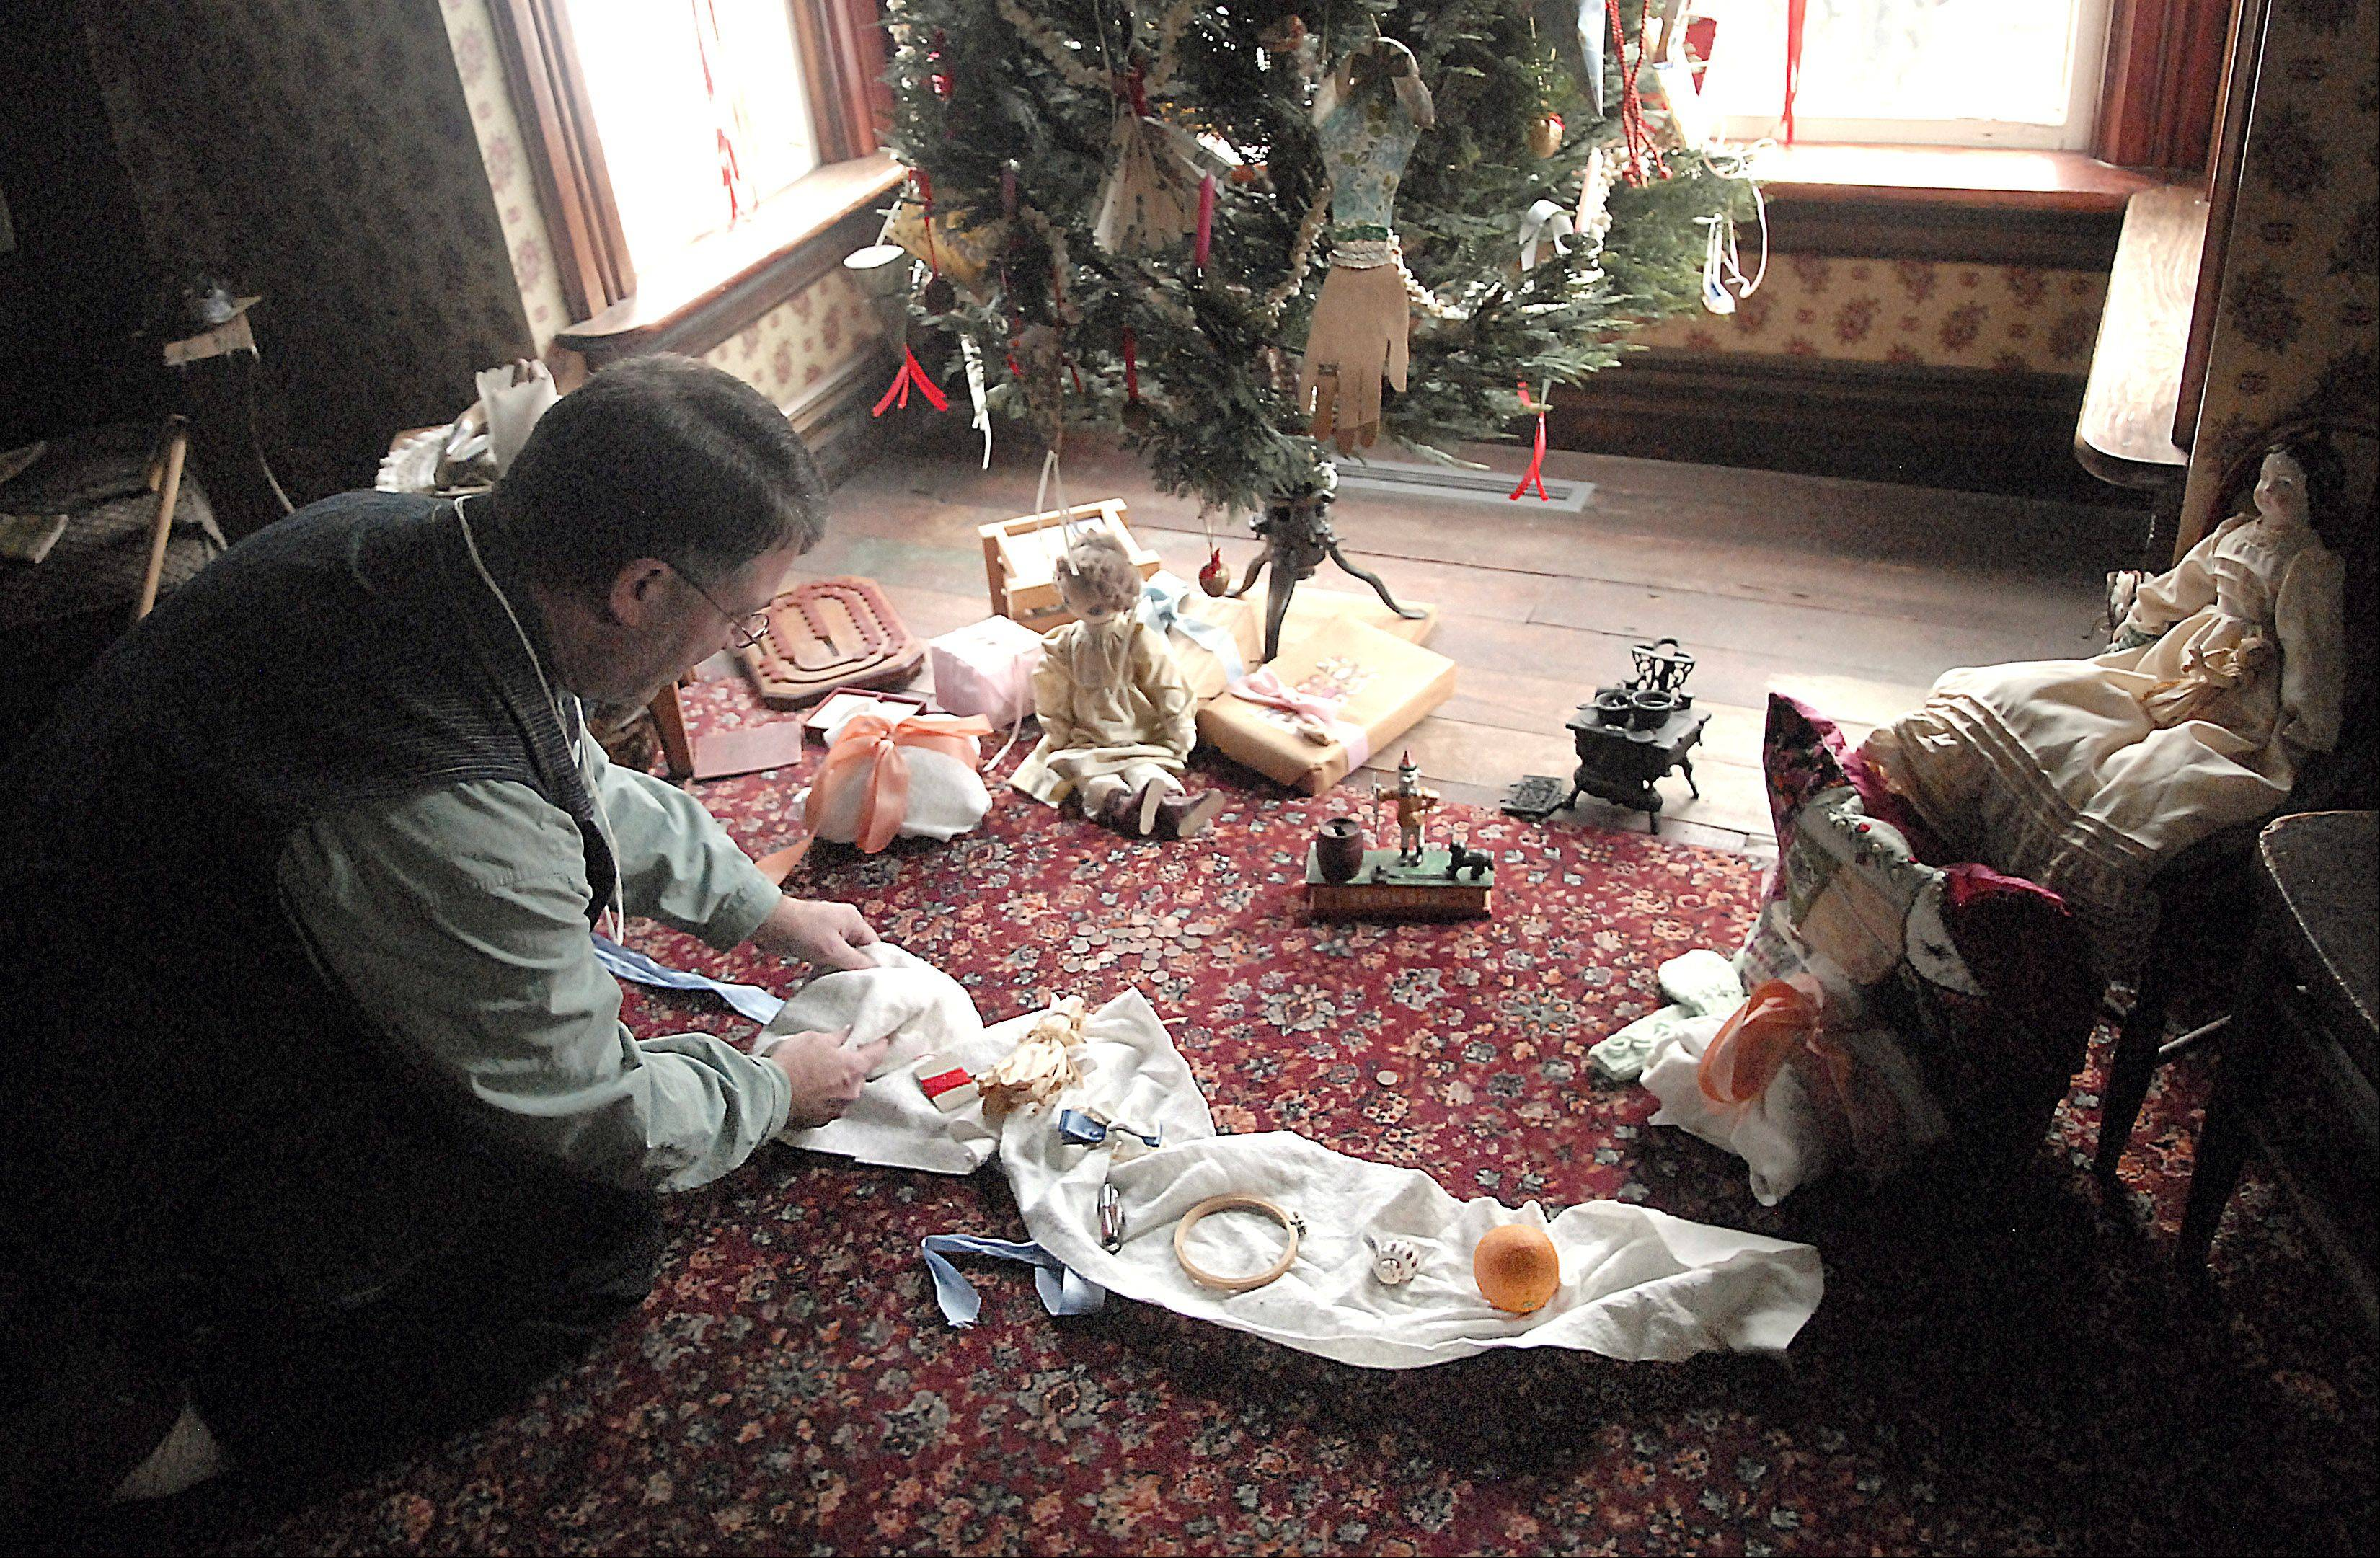 Wayne Hill, Heritage Interpreter at Kline Creek Farm, shows how presents were wrapped in one long sheet of material. Children would take turns unrolling the wrapped package, and whatever they unveiled was their gift.